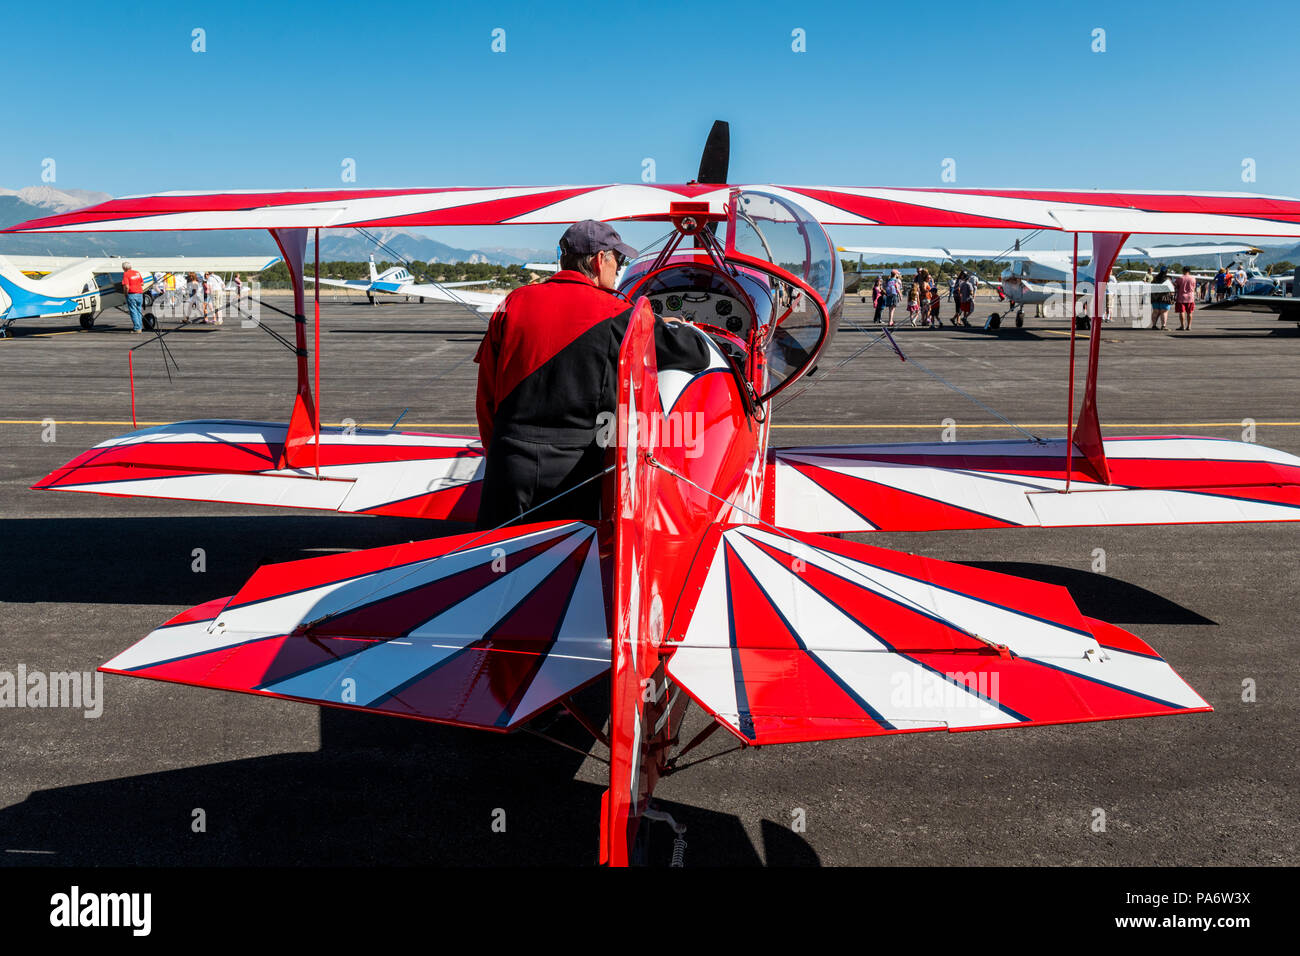 Pilot inspecting Pitts Special S2C biplane; Salida Fly-in & Air Show; Salida; Colorado; USA Stock Photo